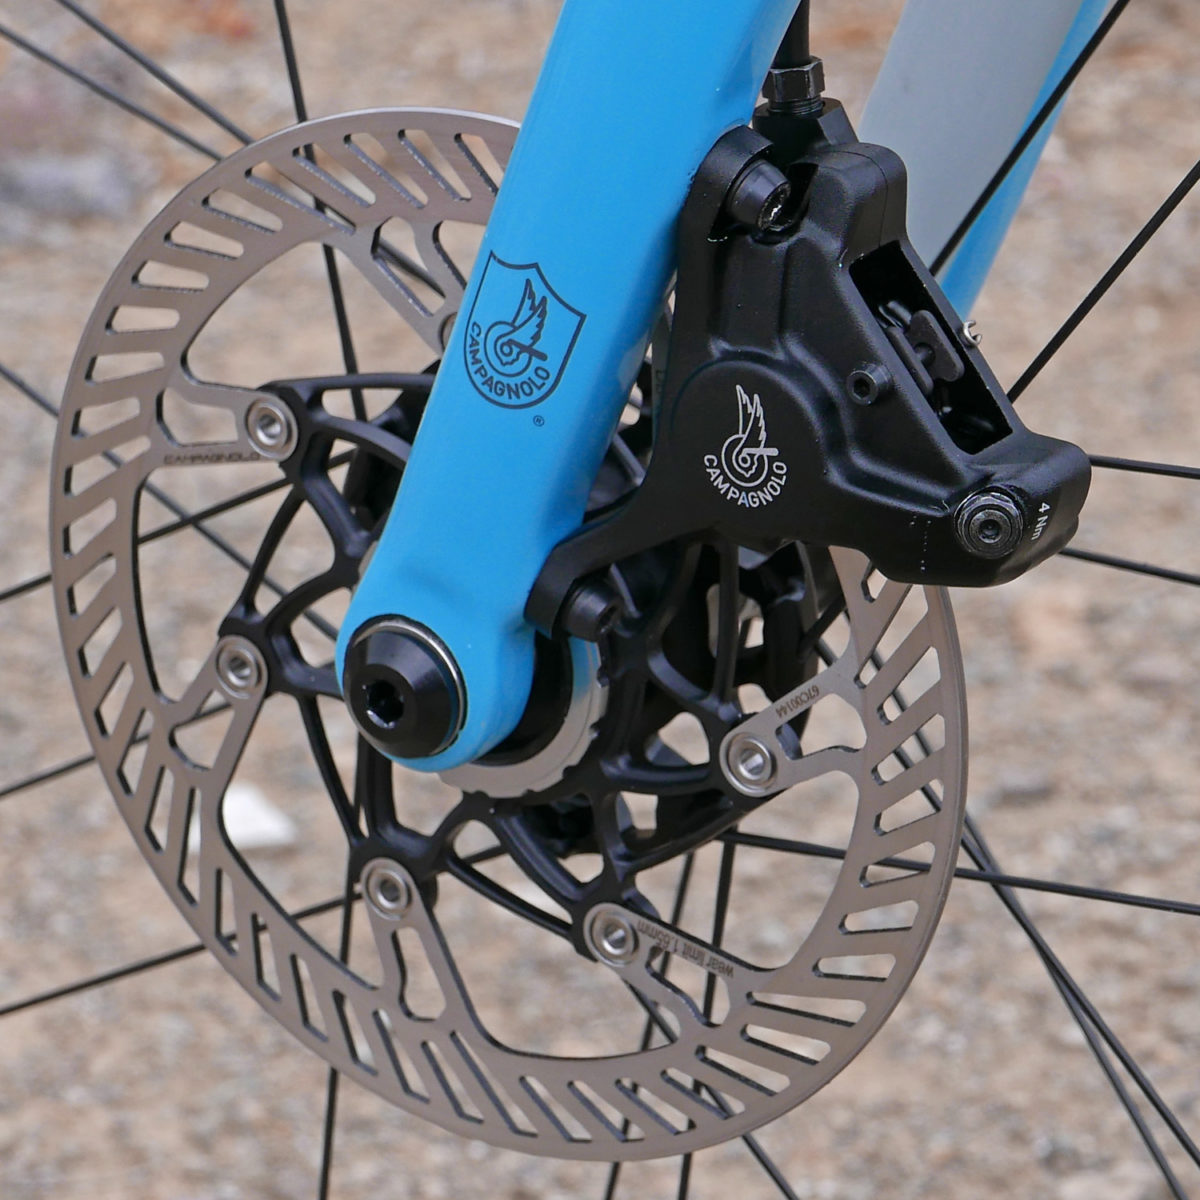 37c83227764 Campagnolo debuts hydraulic disc brakes all the way to affordable Potenza  11 alloy groupset